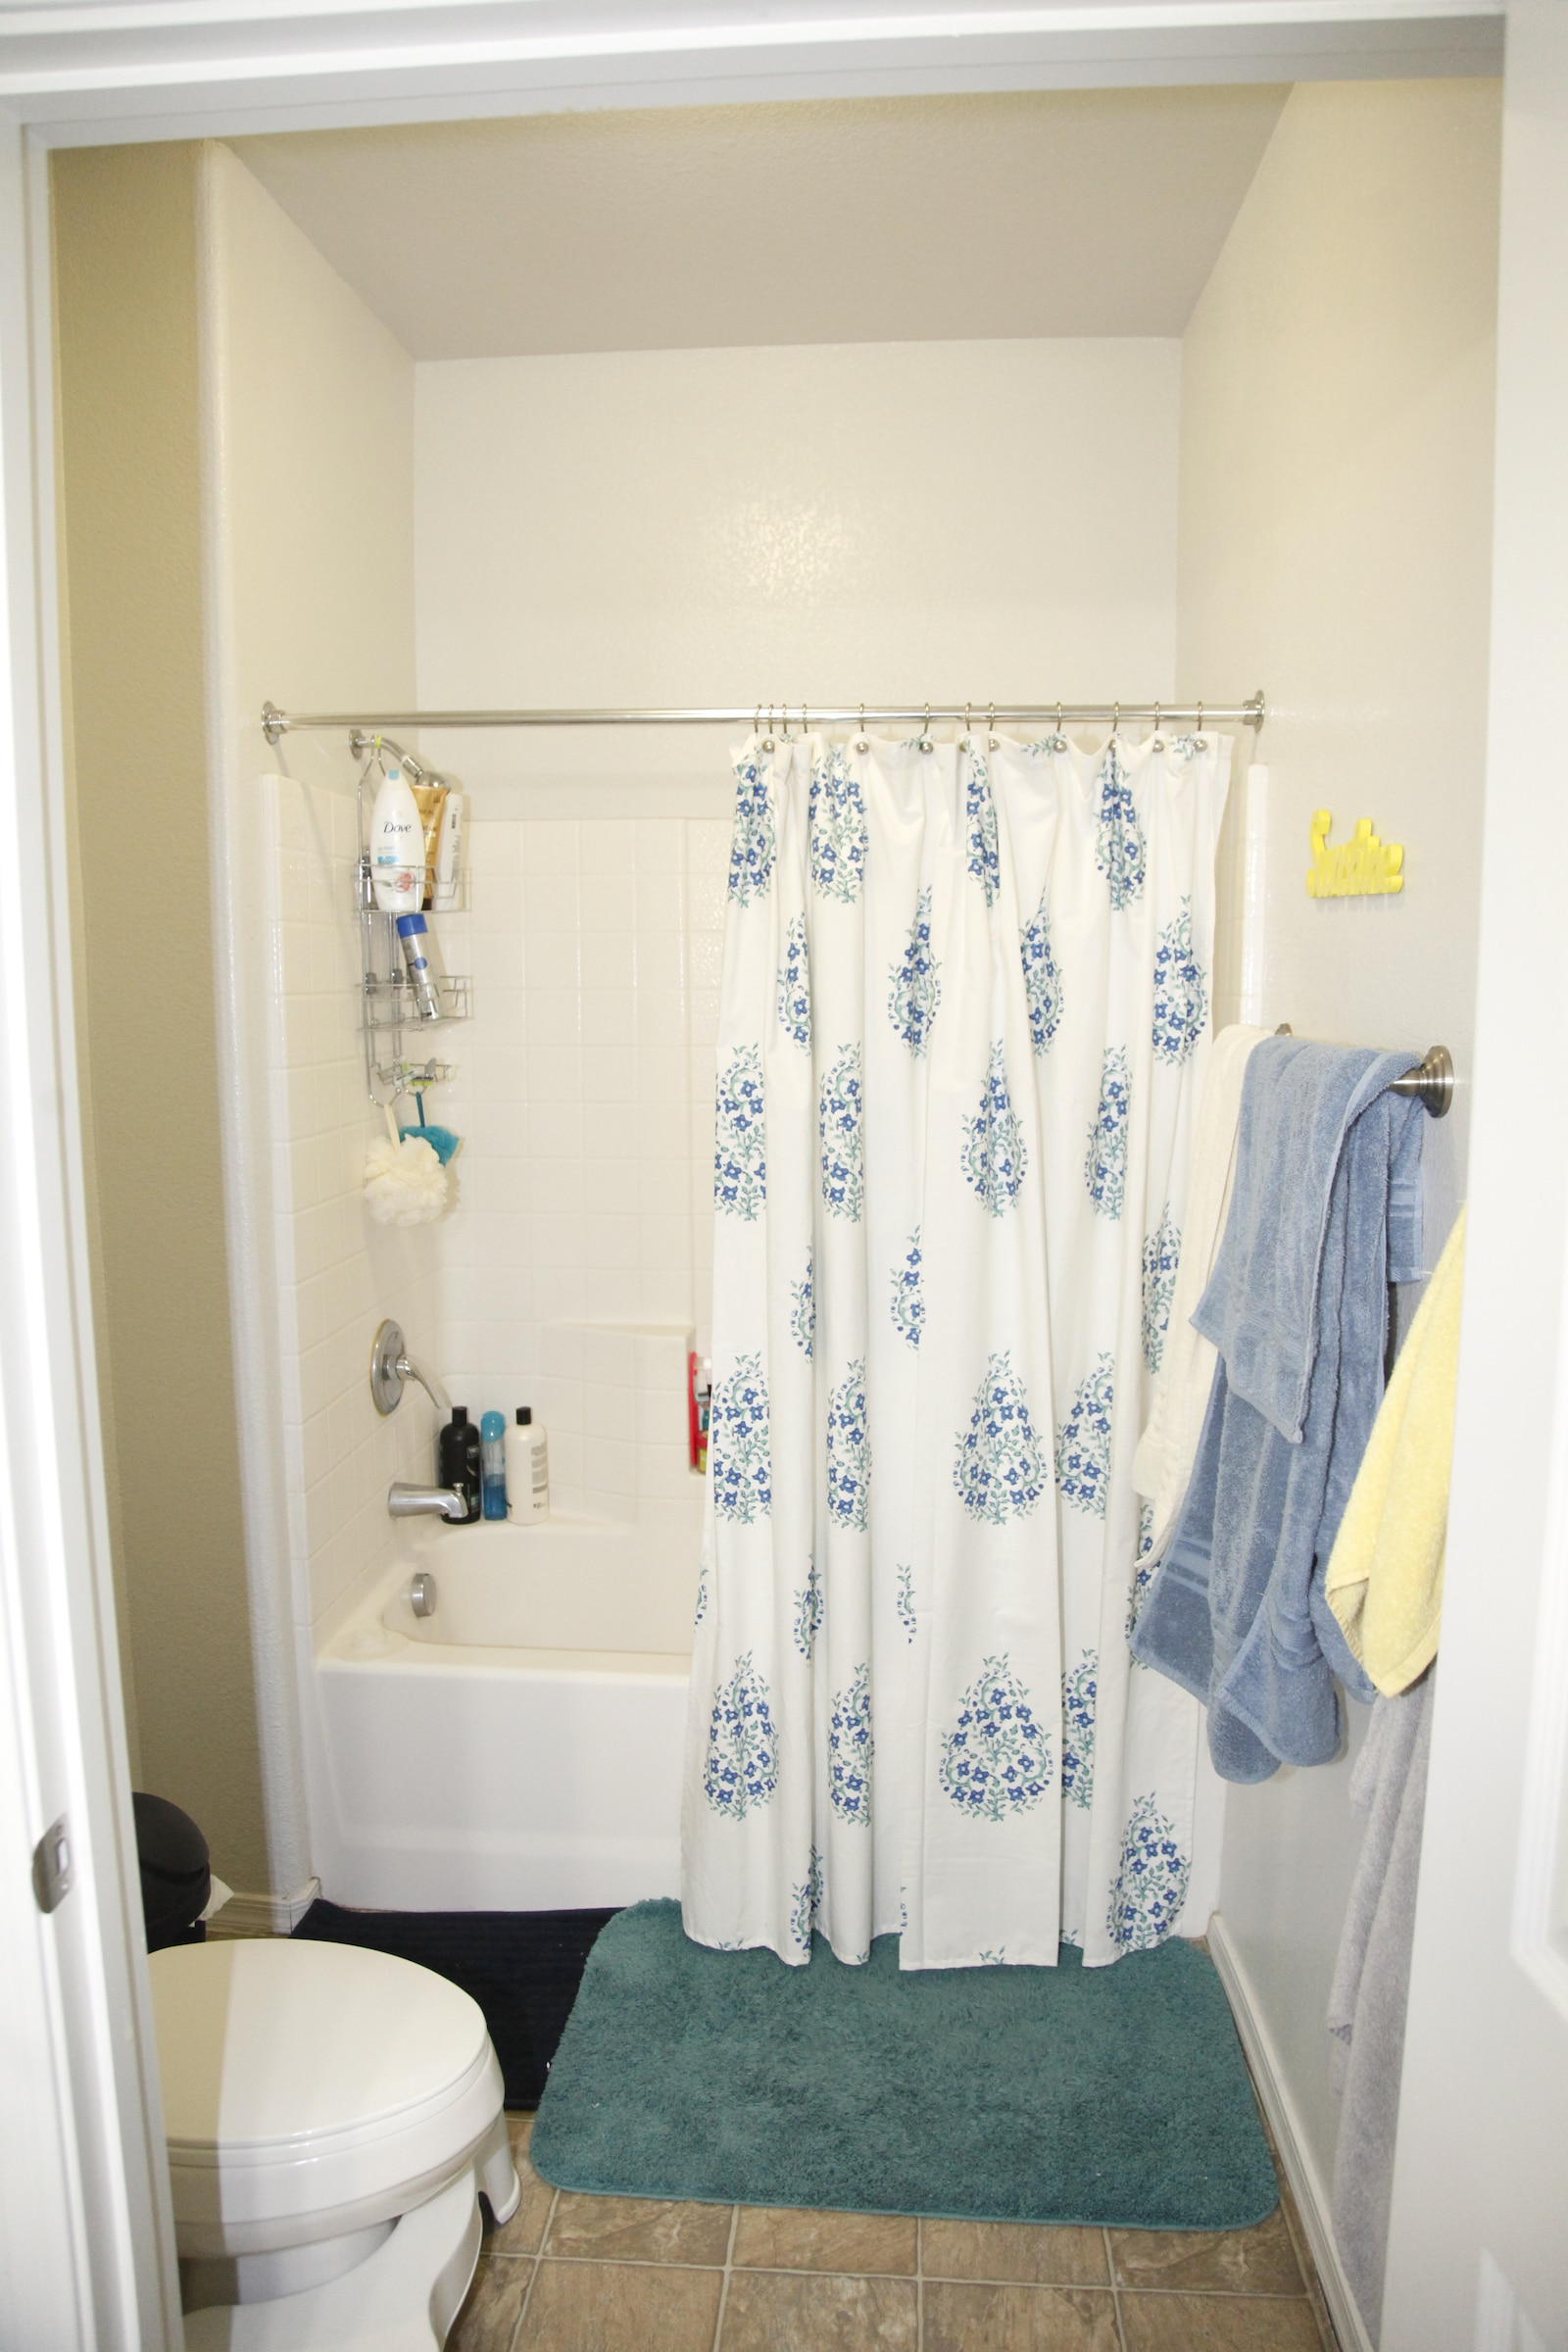 Apt 9 Shower Curtain Residence Hall Mckay Village Housing Residence Life